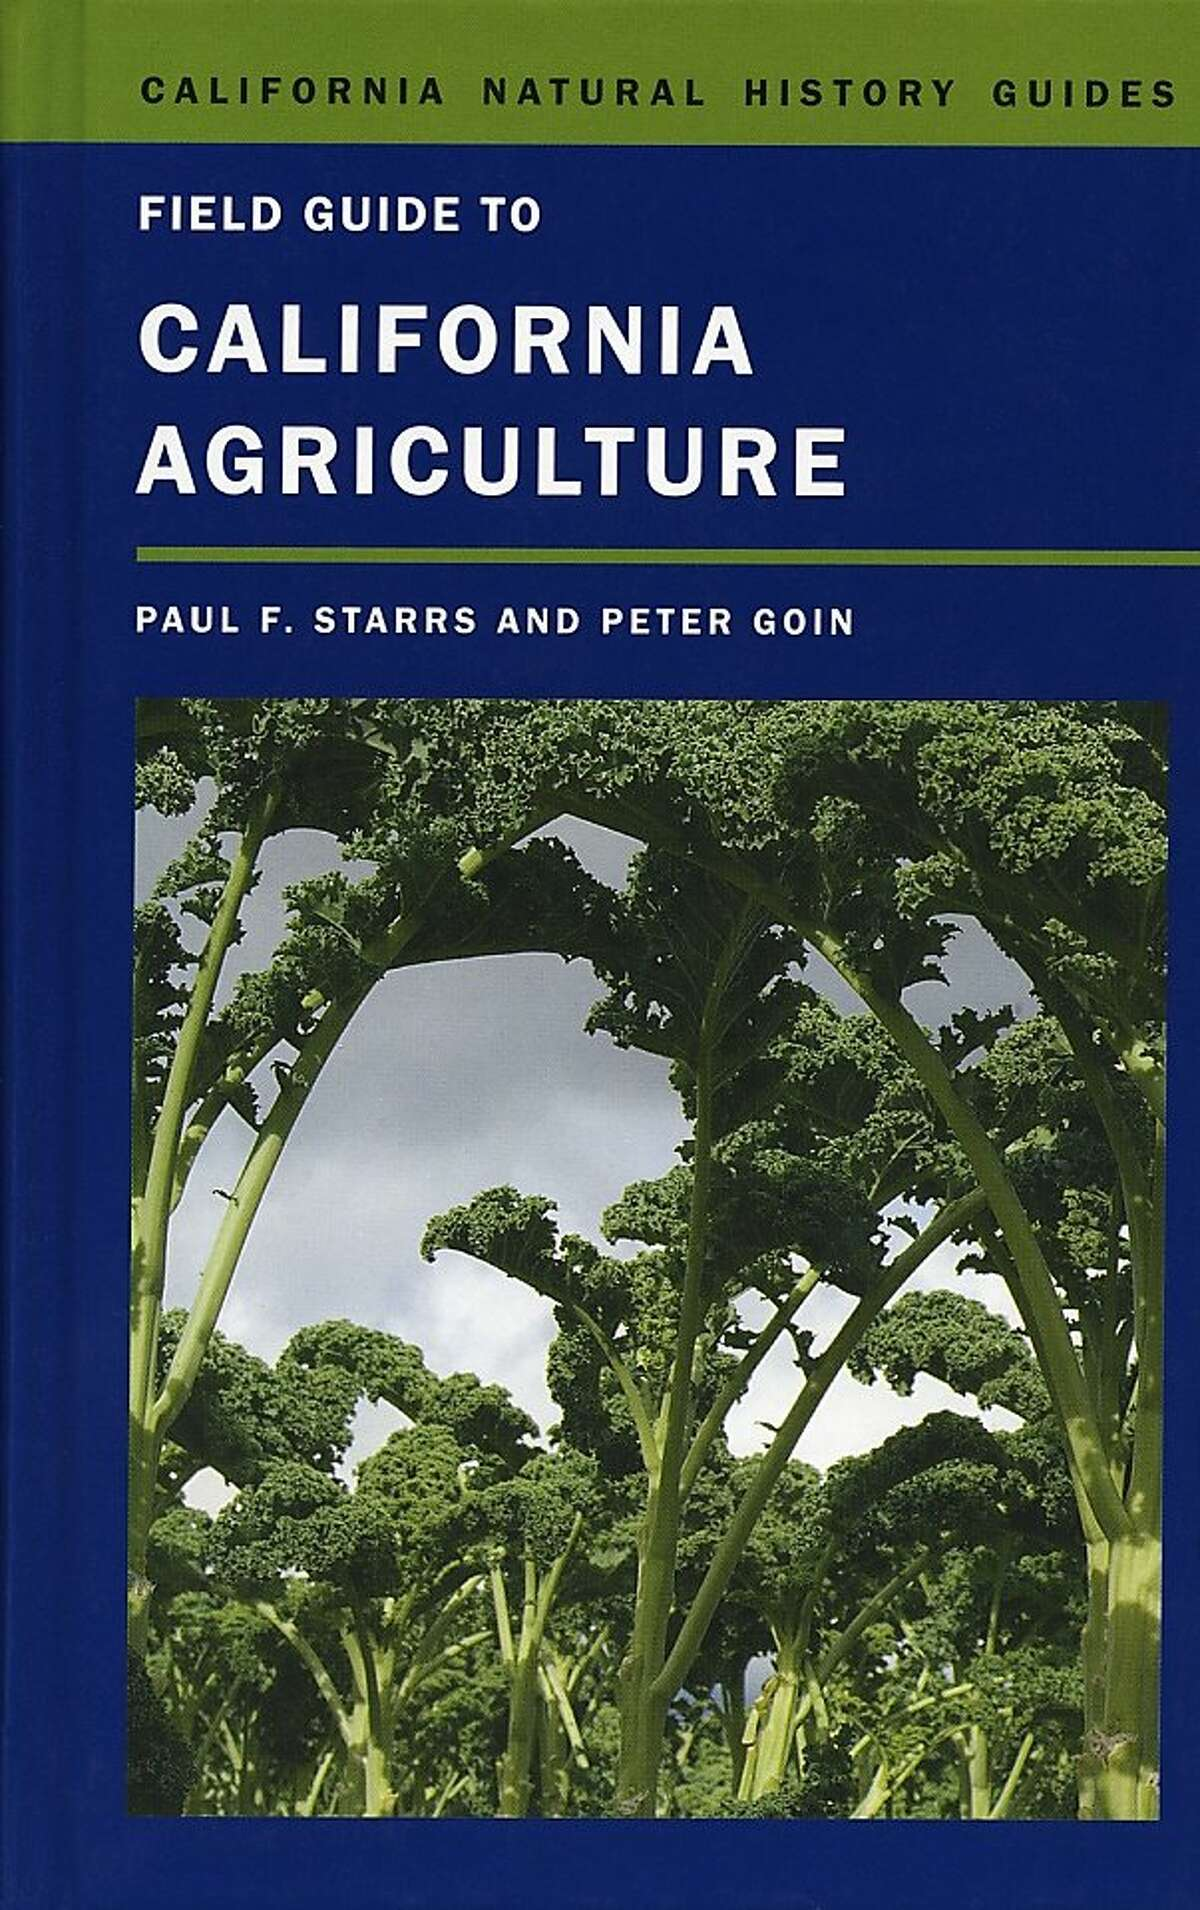 Field Guide to California Agriculture by Paul F. Starrs and Peter Goin.